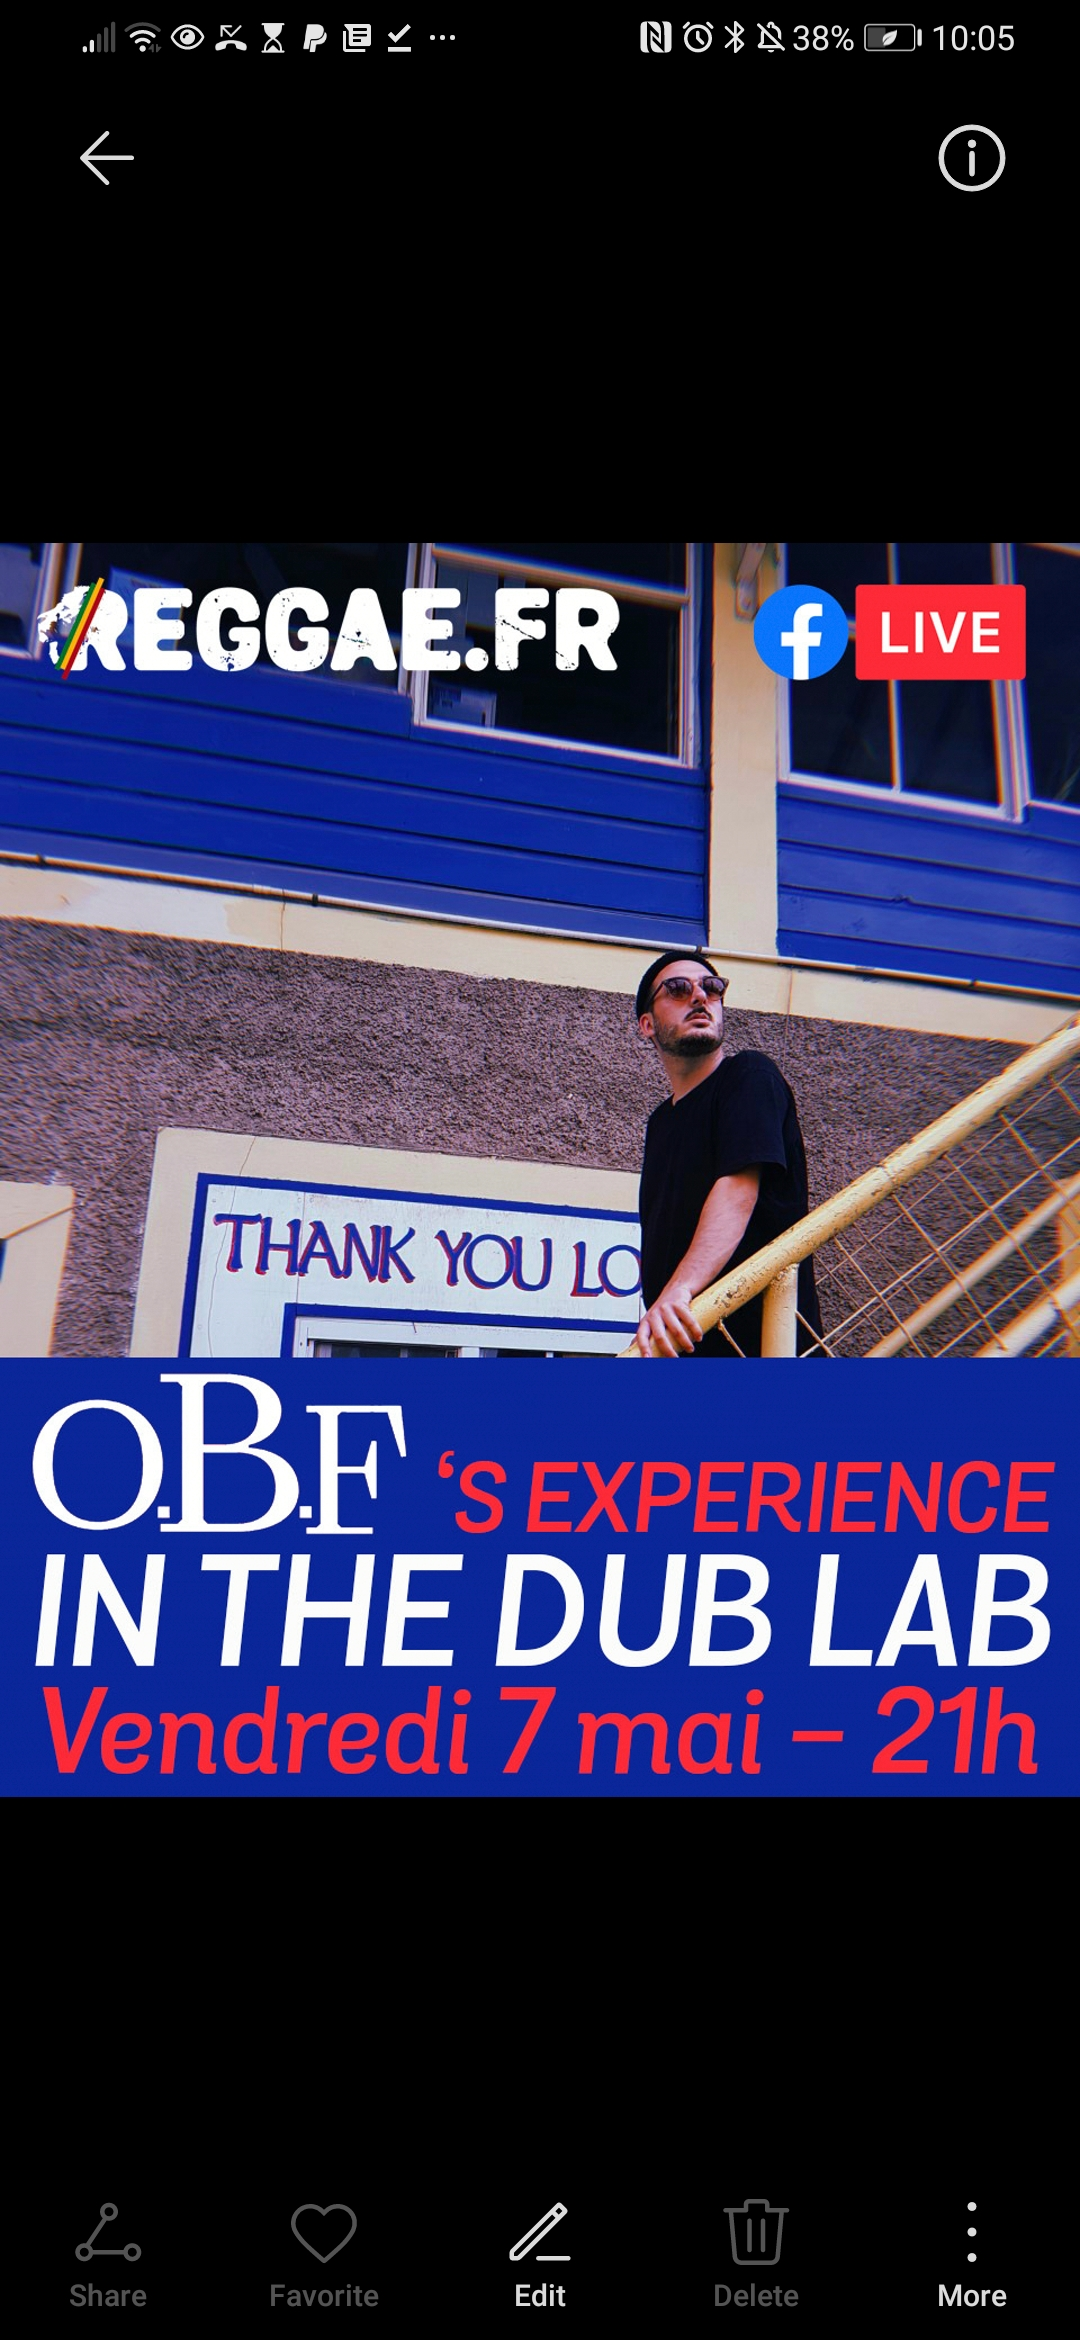 Reggae.fr / in the dub lab with O. B. F